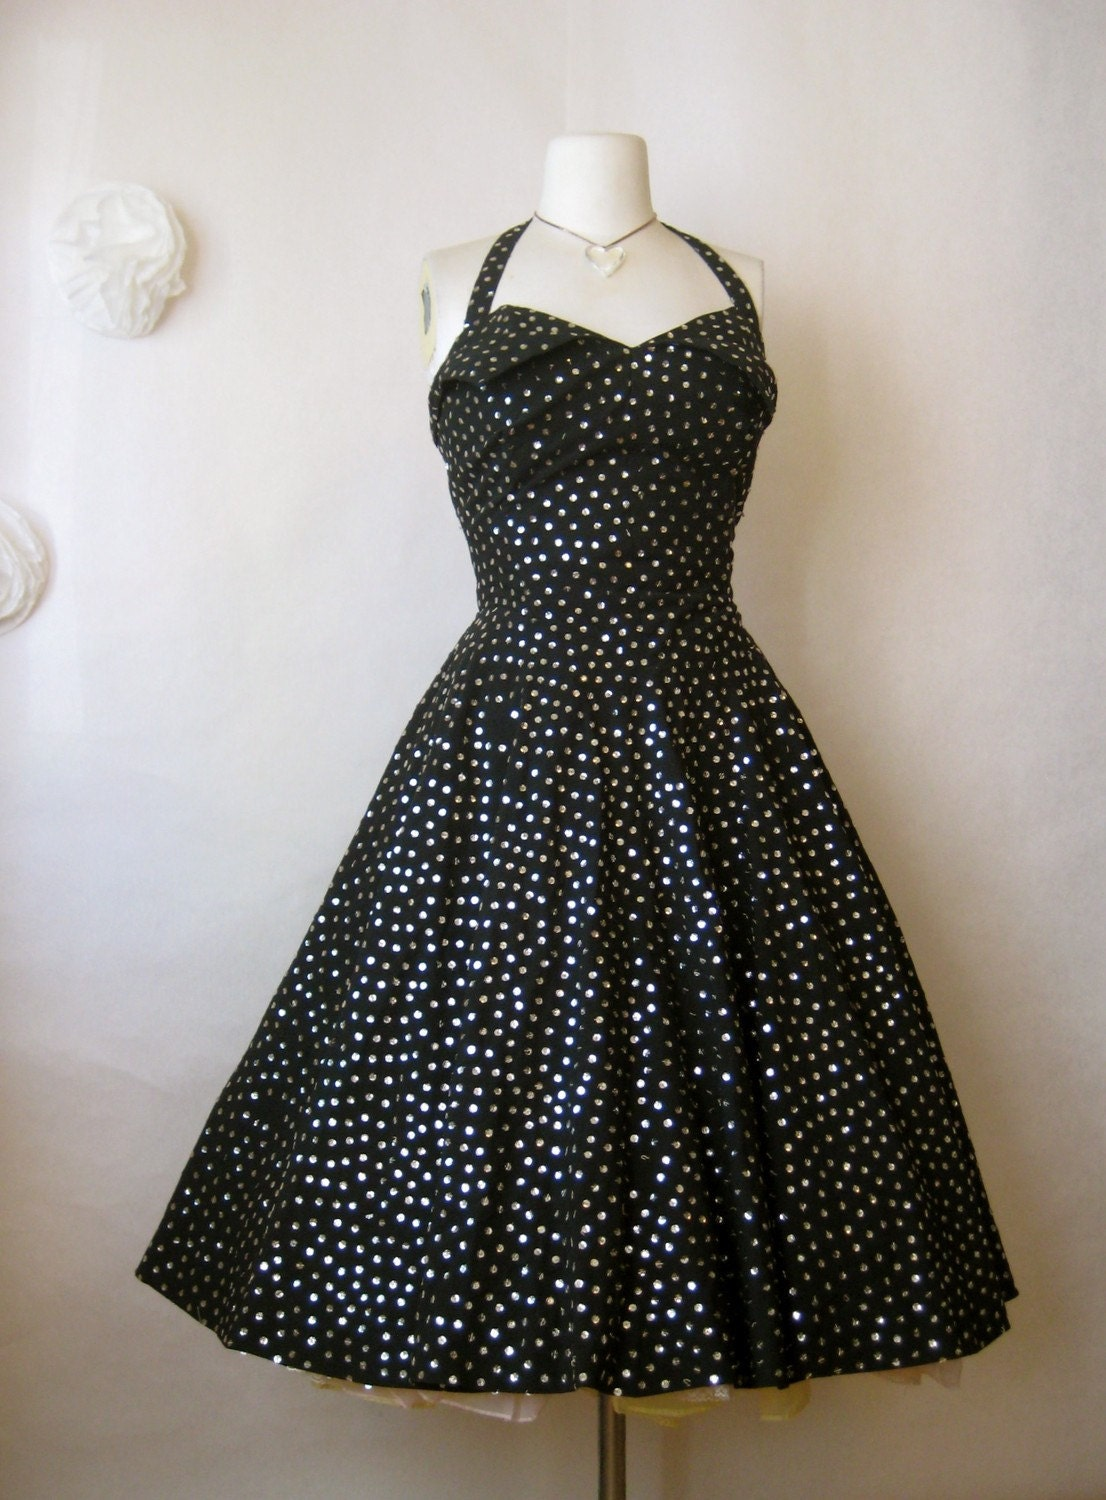 dazzling vintage 1950s dress. sequins circle mexican party gown. starry night black silver petal bust.